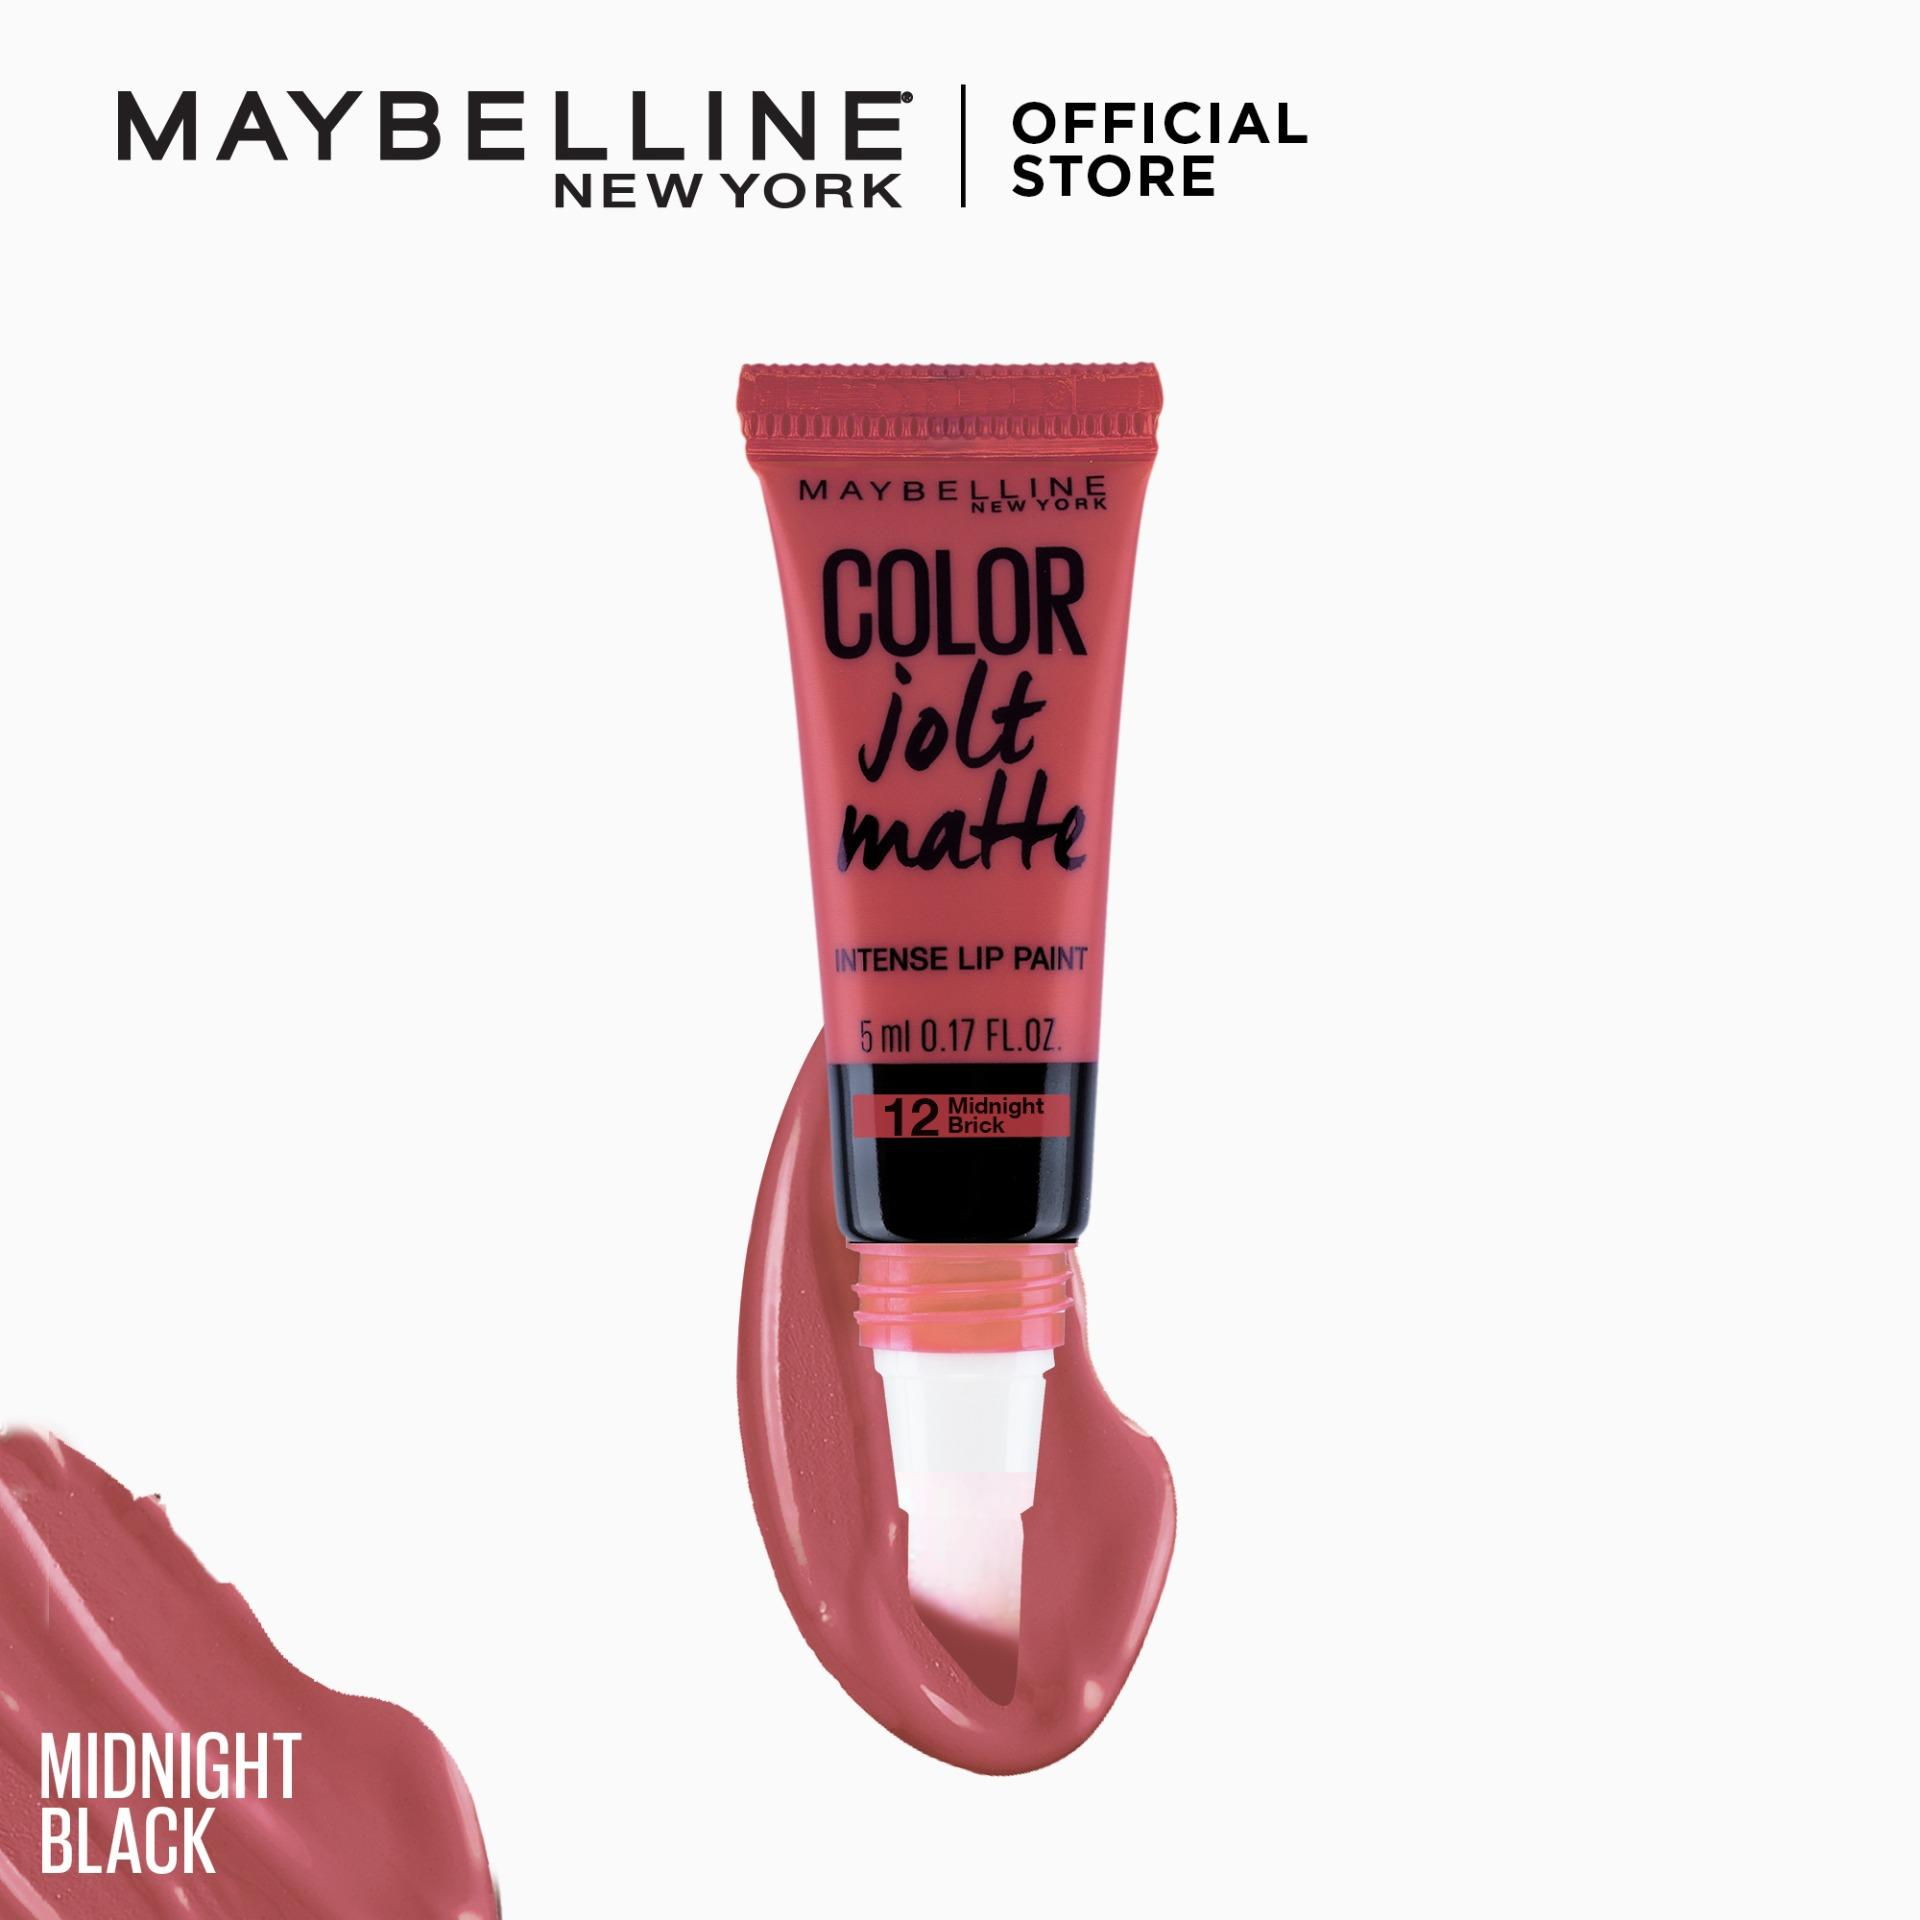 Color Jolt Matte Lip and Cheek Tint – 12 Midnight Brick [#PaintItMatte] by Maybelline Lip Studio Philippines